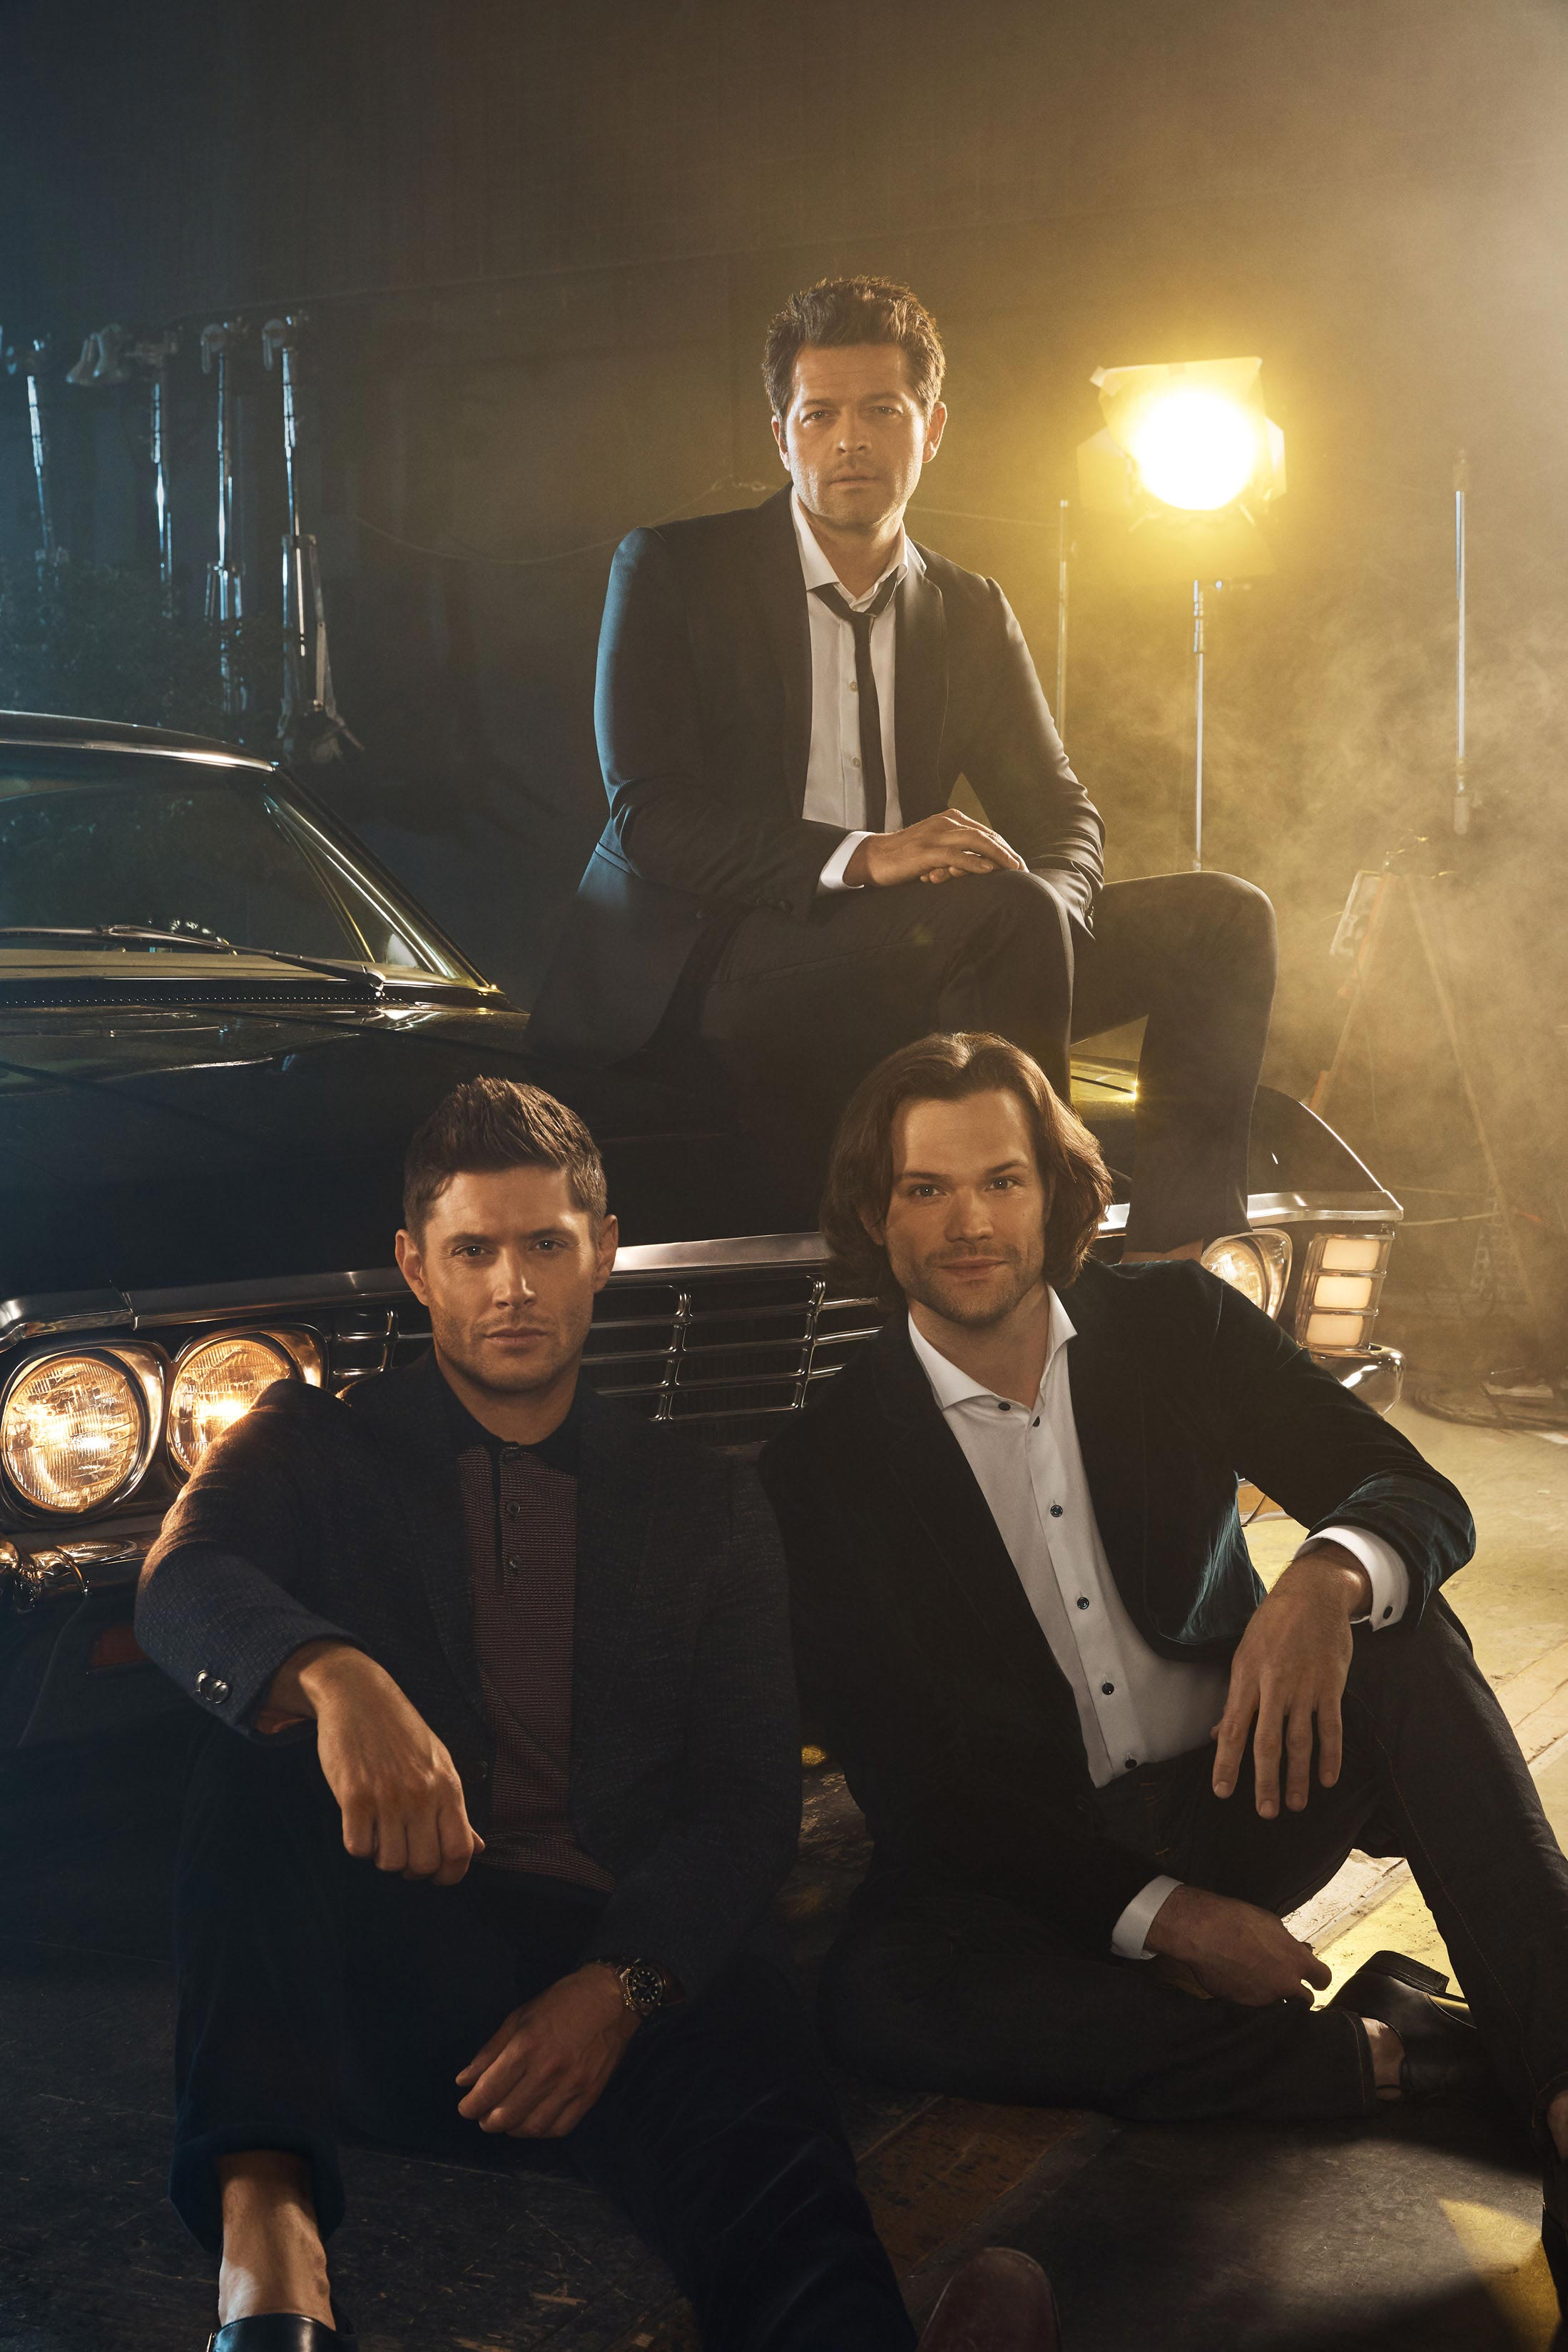 2019_01_09_EW_Supernatural_Car_Cover_1159comp-4_Web.jpg